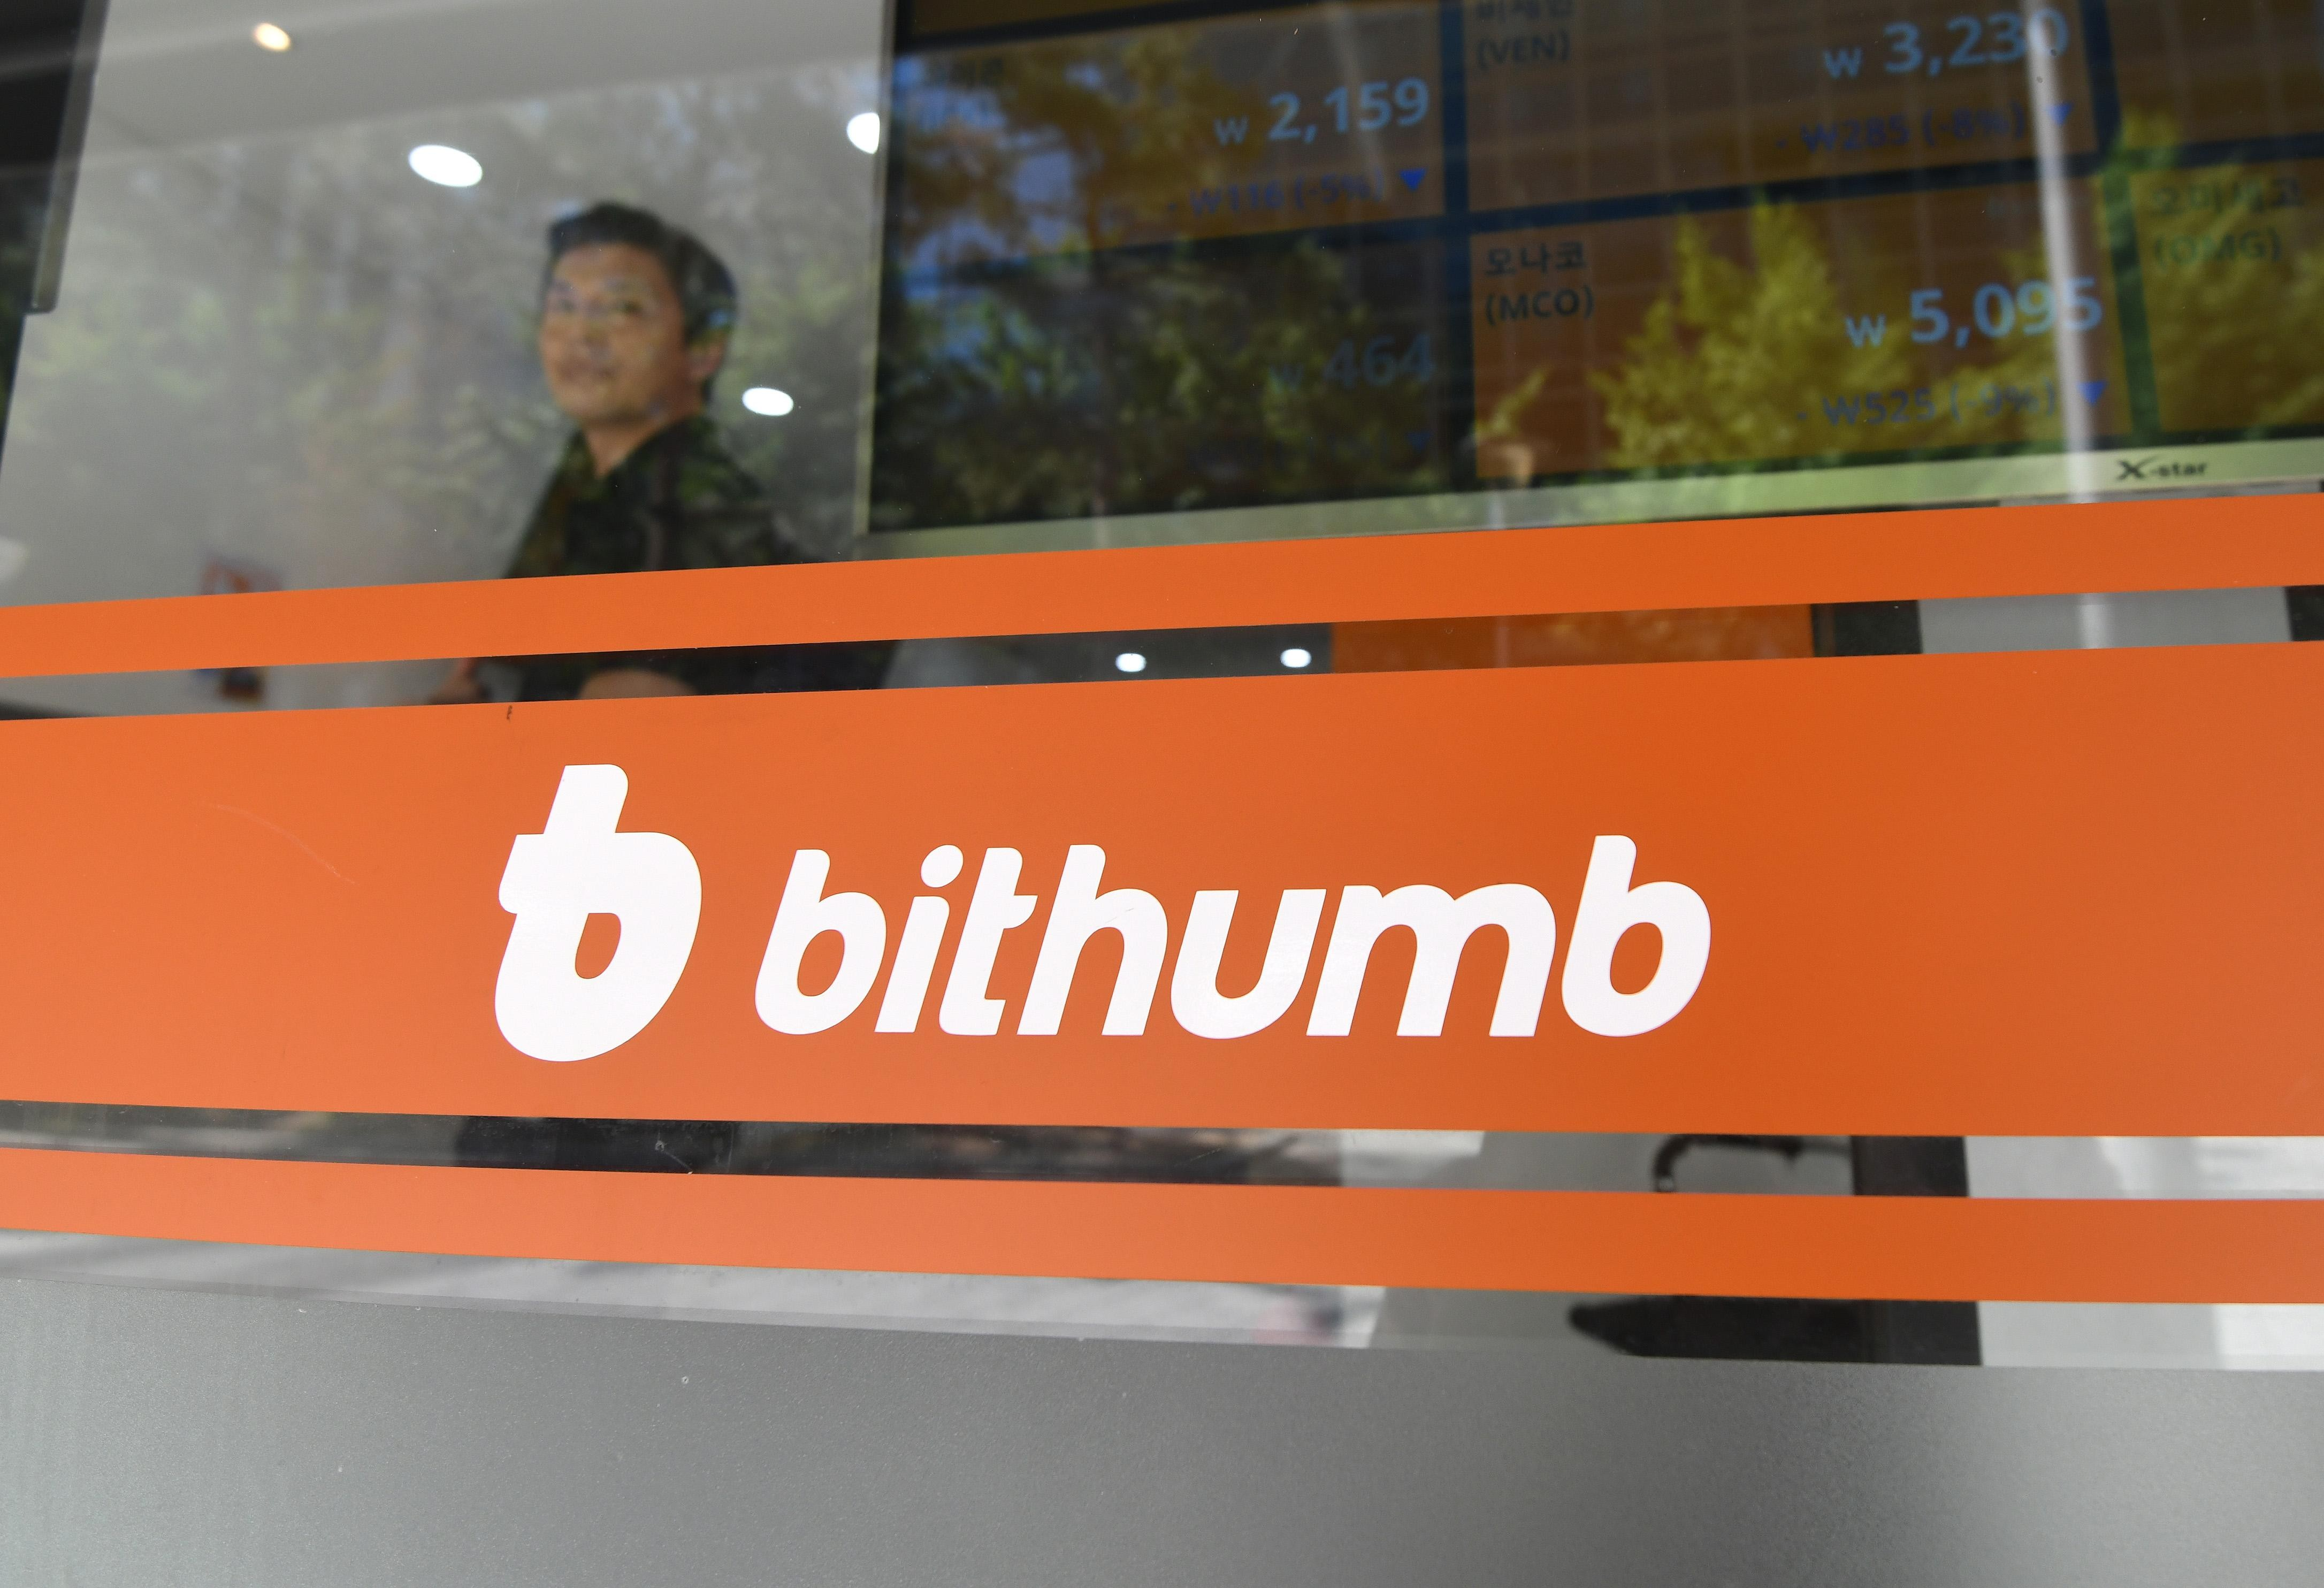 Bithumb abrirá un exchange de criptomonedas en India